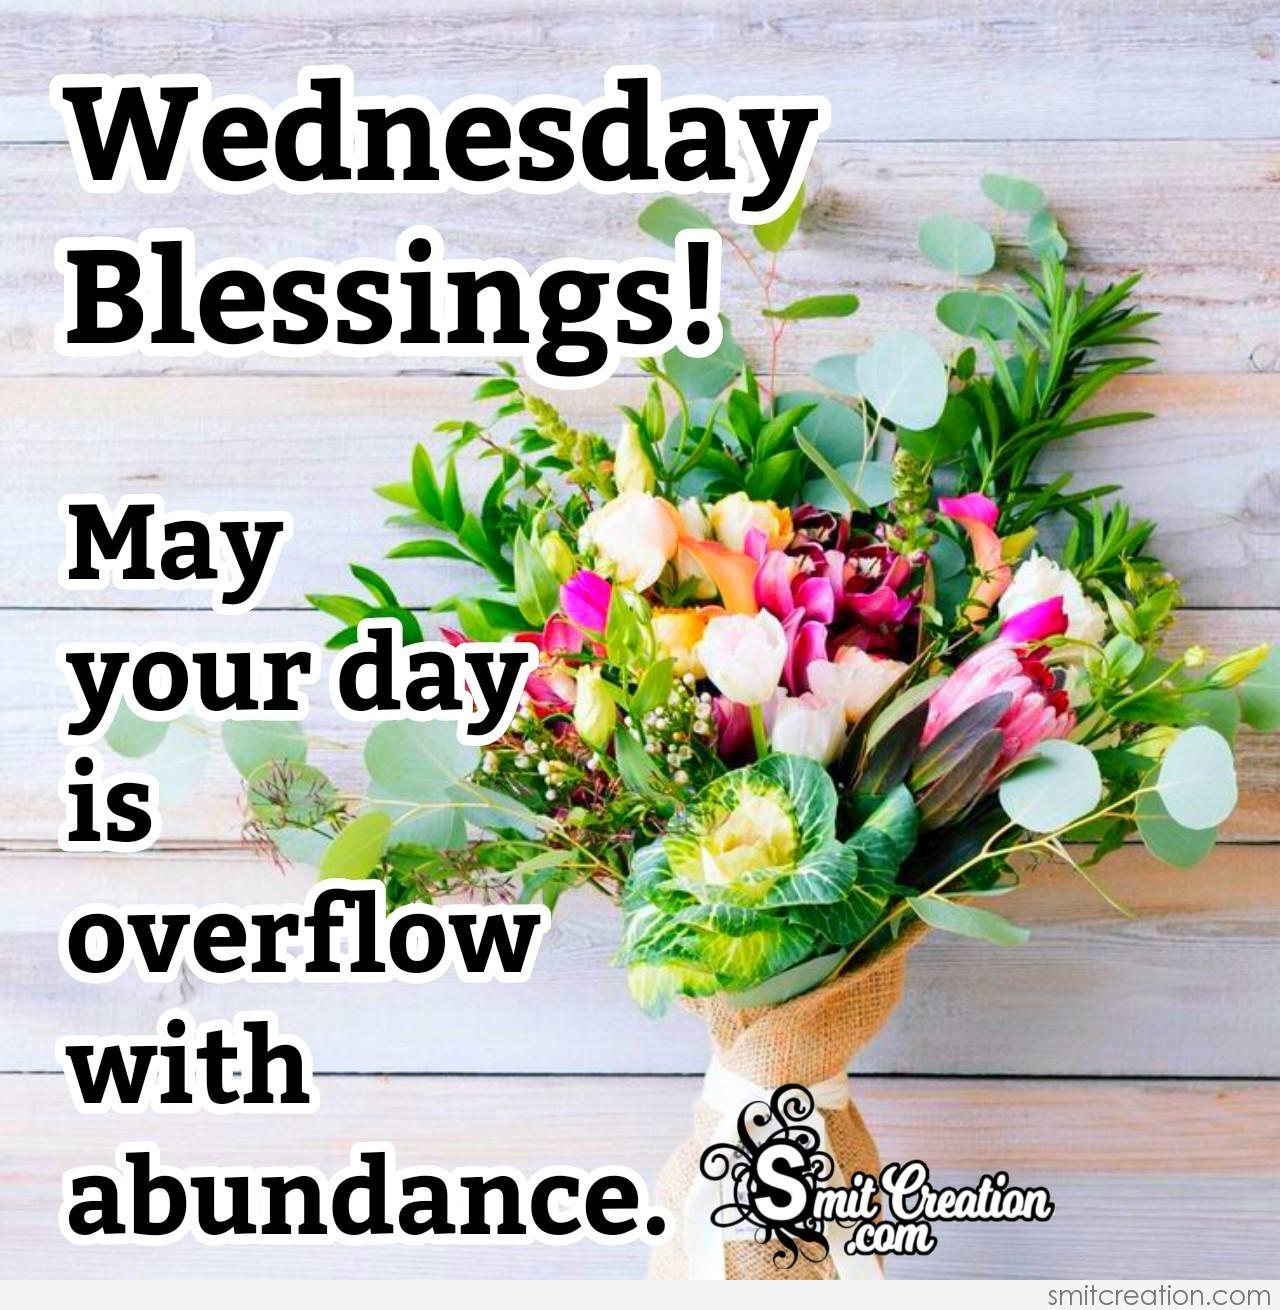 Wednesday Blessing Wish - SmitCreation.com